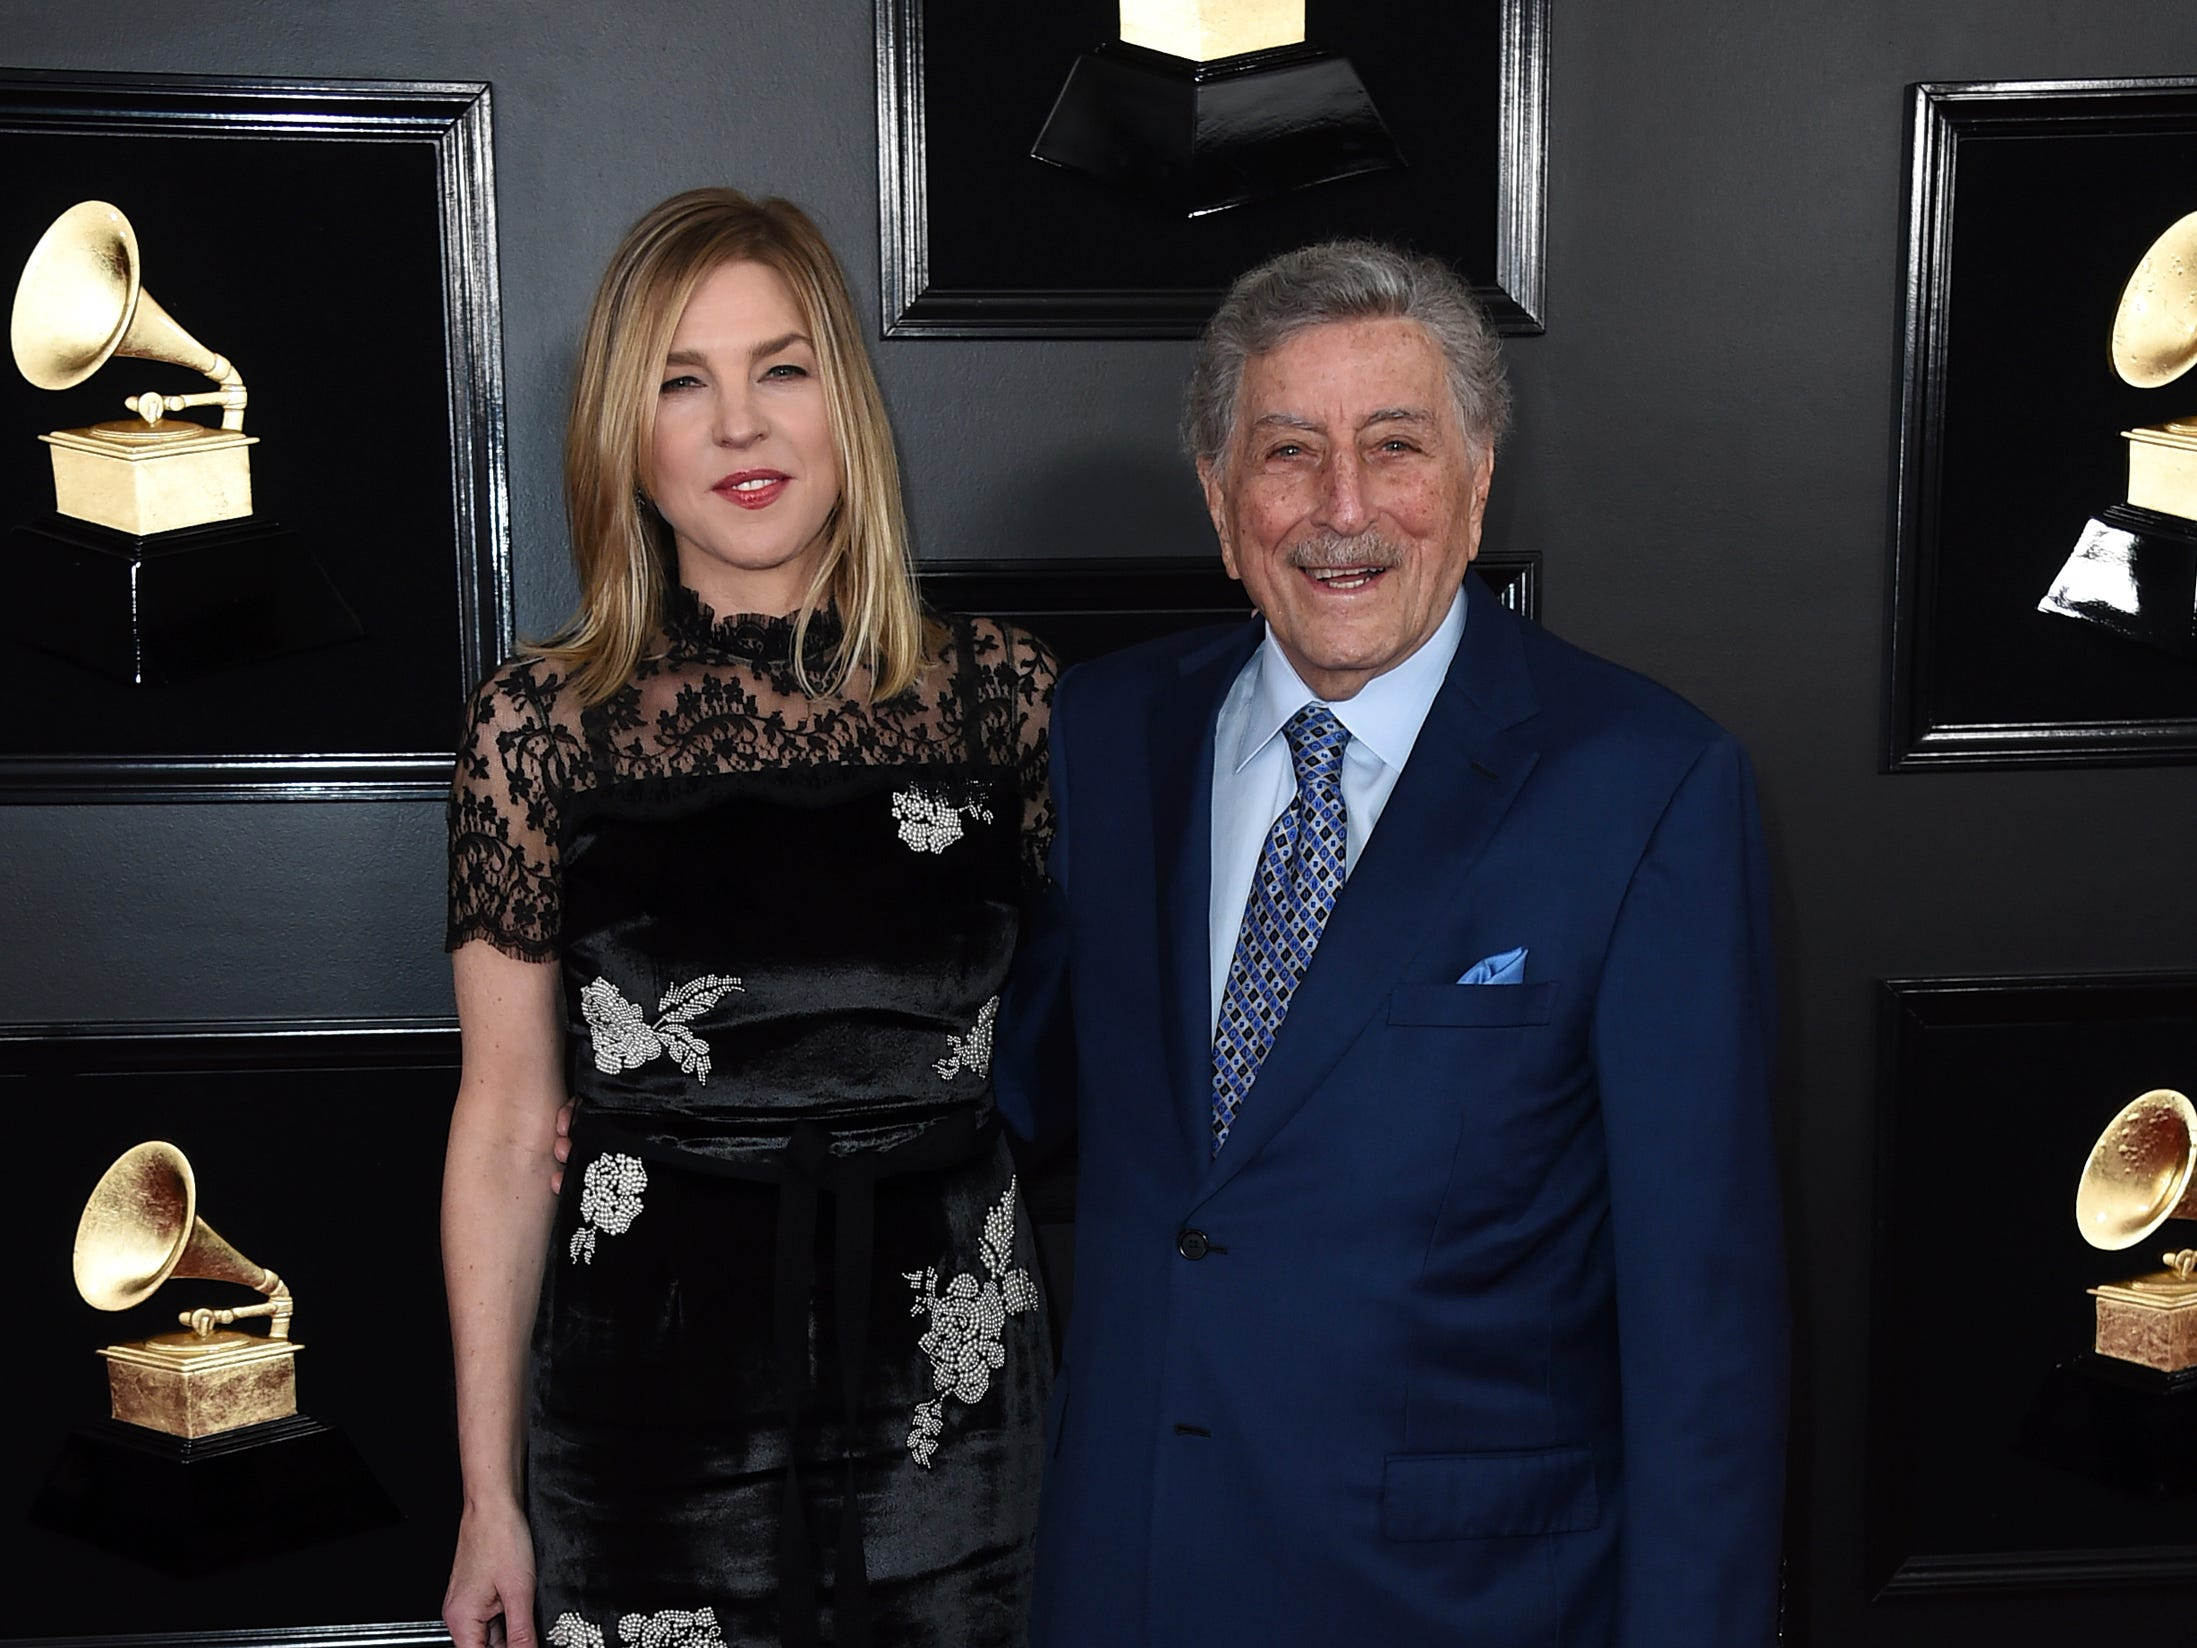 Diana Krall, left, and Tony Bennett arrive at the 61st annual Grammy Awards at the Staples Center on Sunday, Feb. 10, 2019, in Los Angeles.